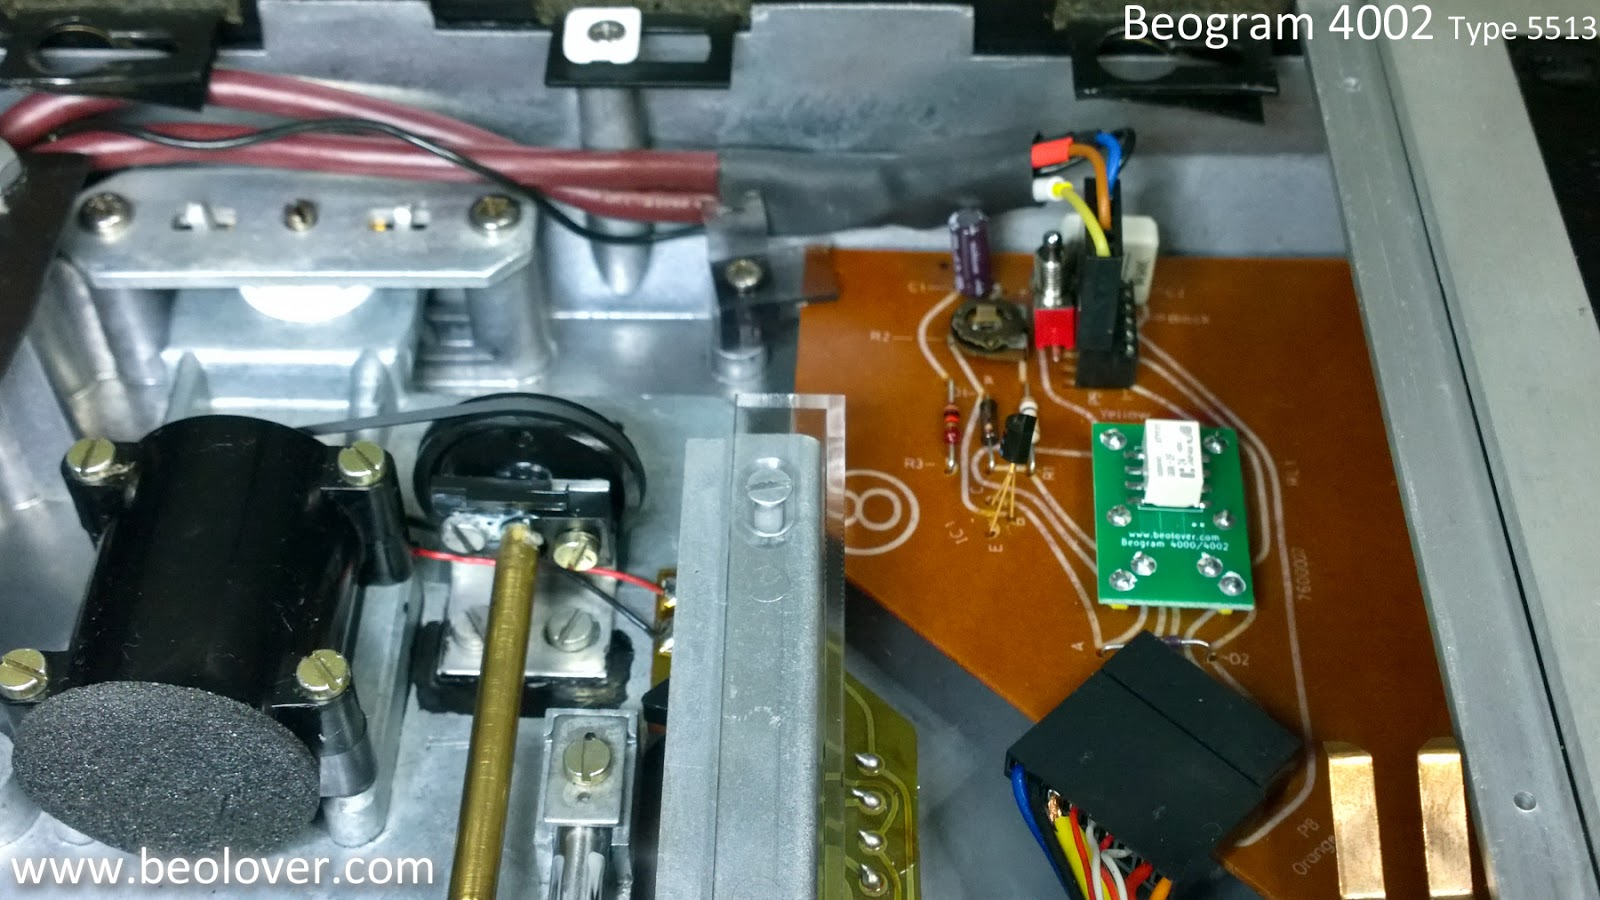 beolover: Beogram 4002 (5513): First Record Play Testing